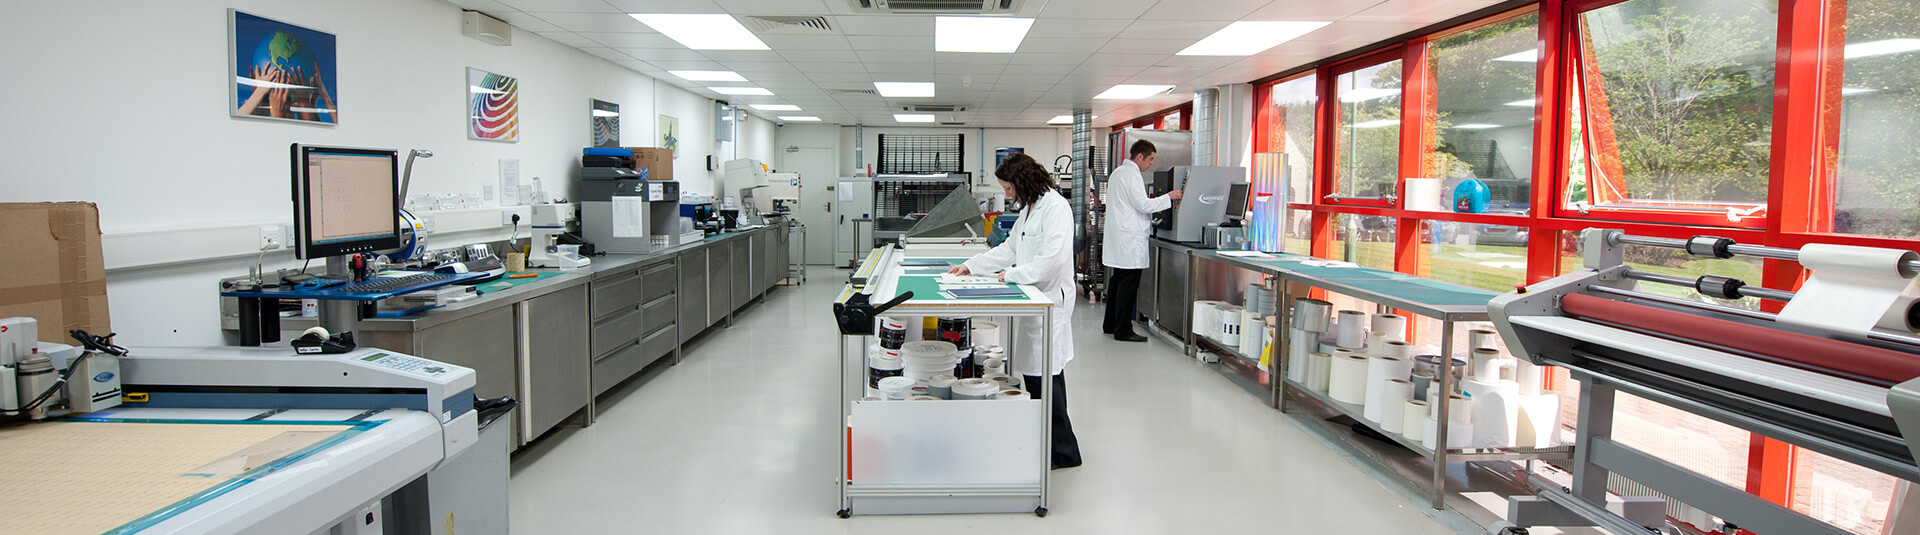 Research & Development Chemists in Our Design Centre Lab in East Kilbride, Scotland.